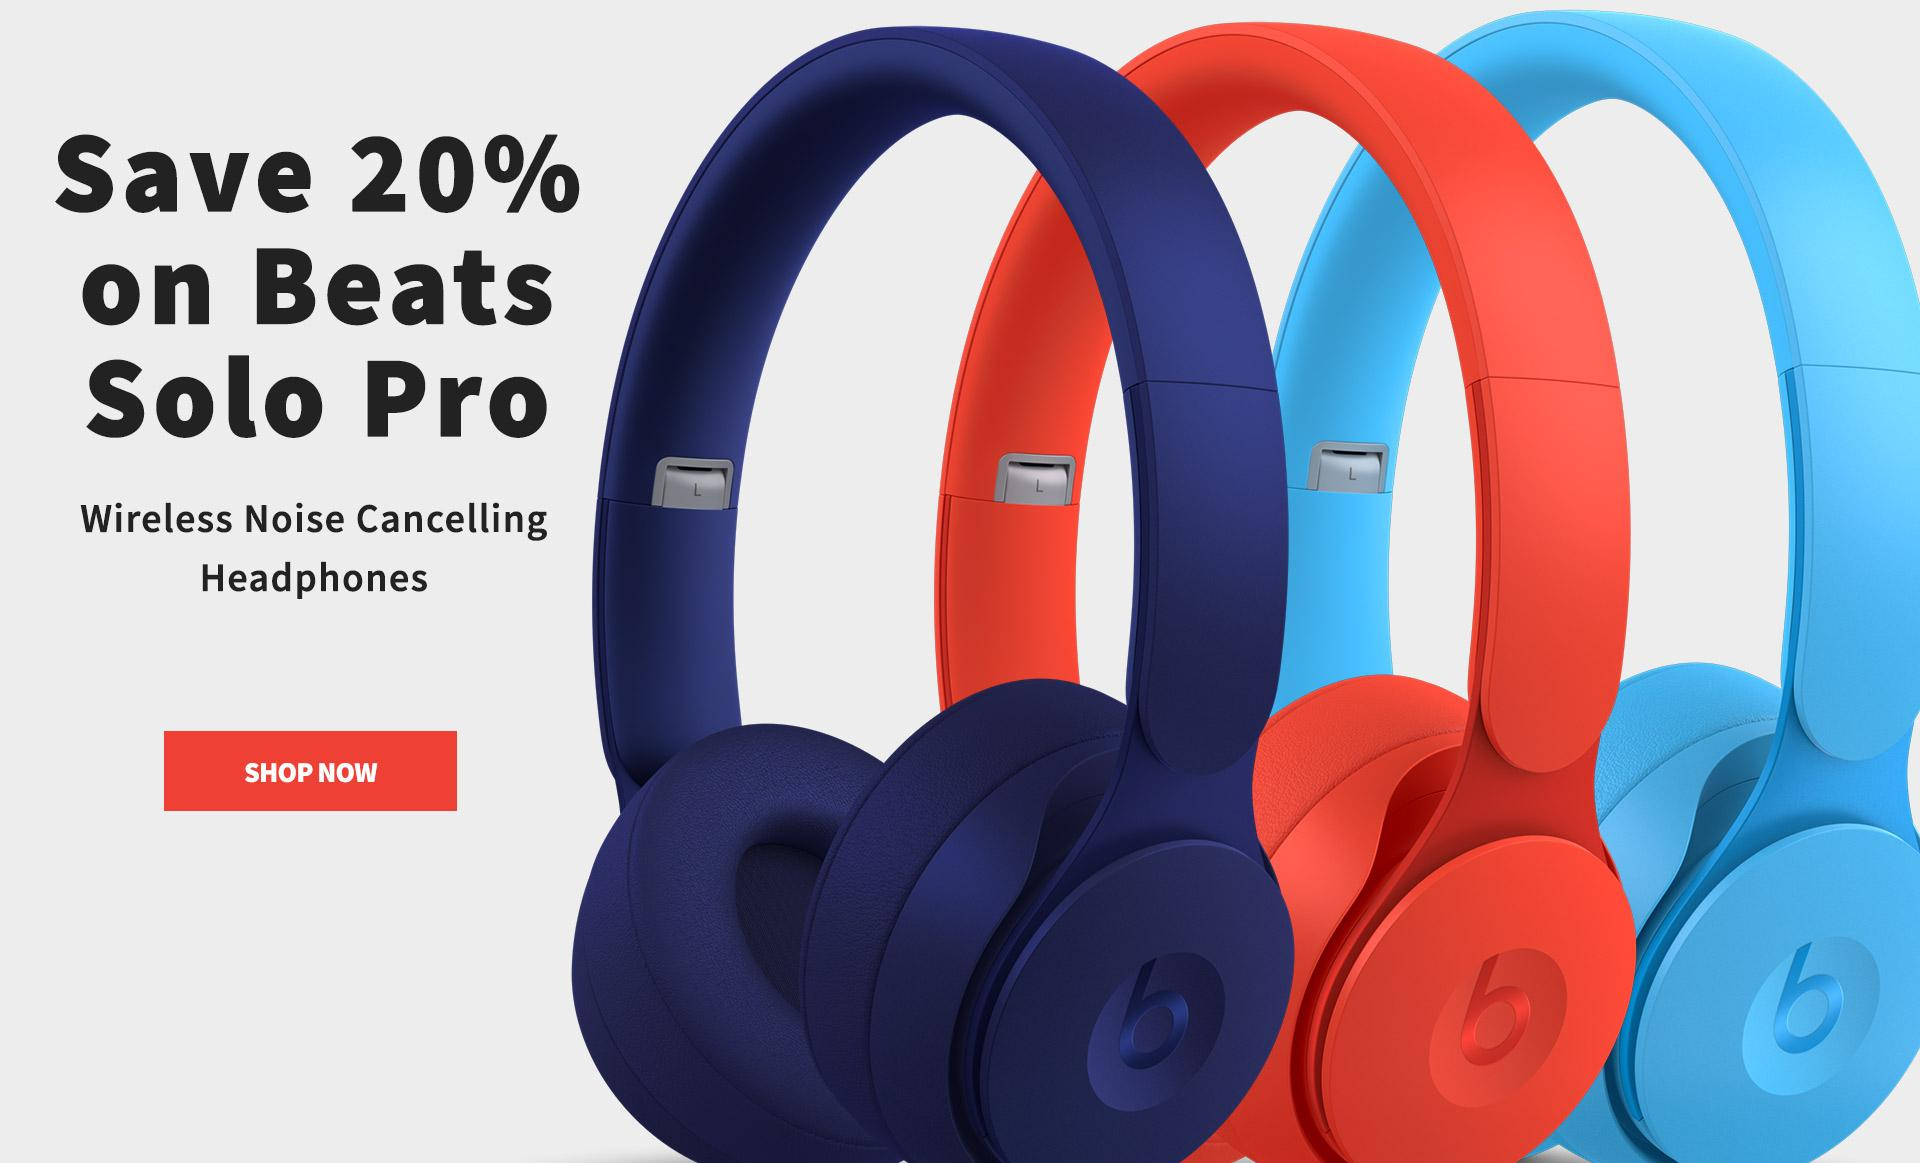 Beats Solo Pro Headphones are 20 percent off through Nov. 21